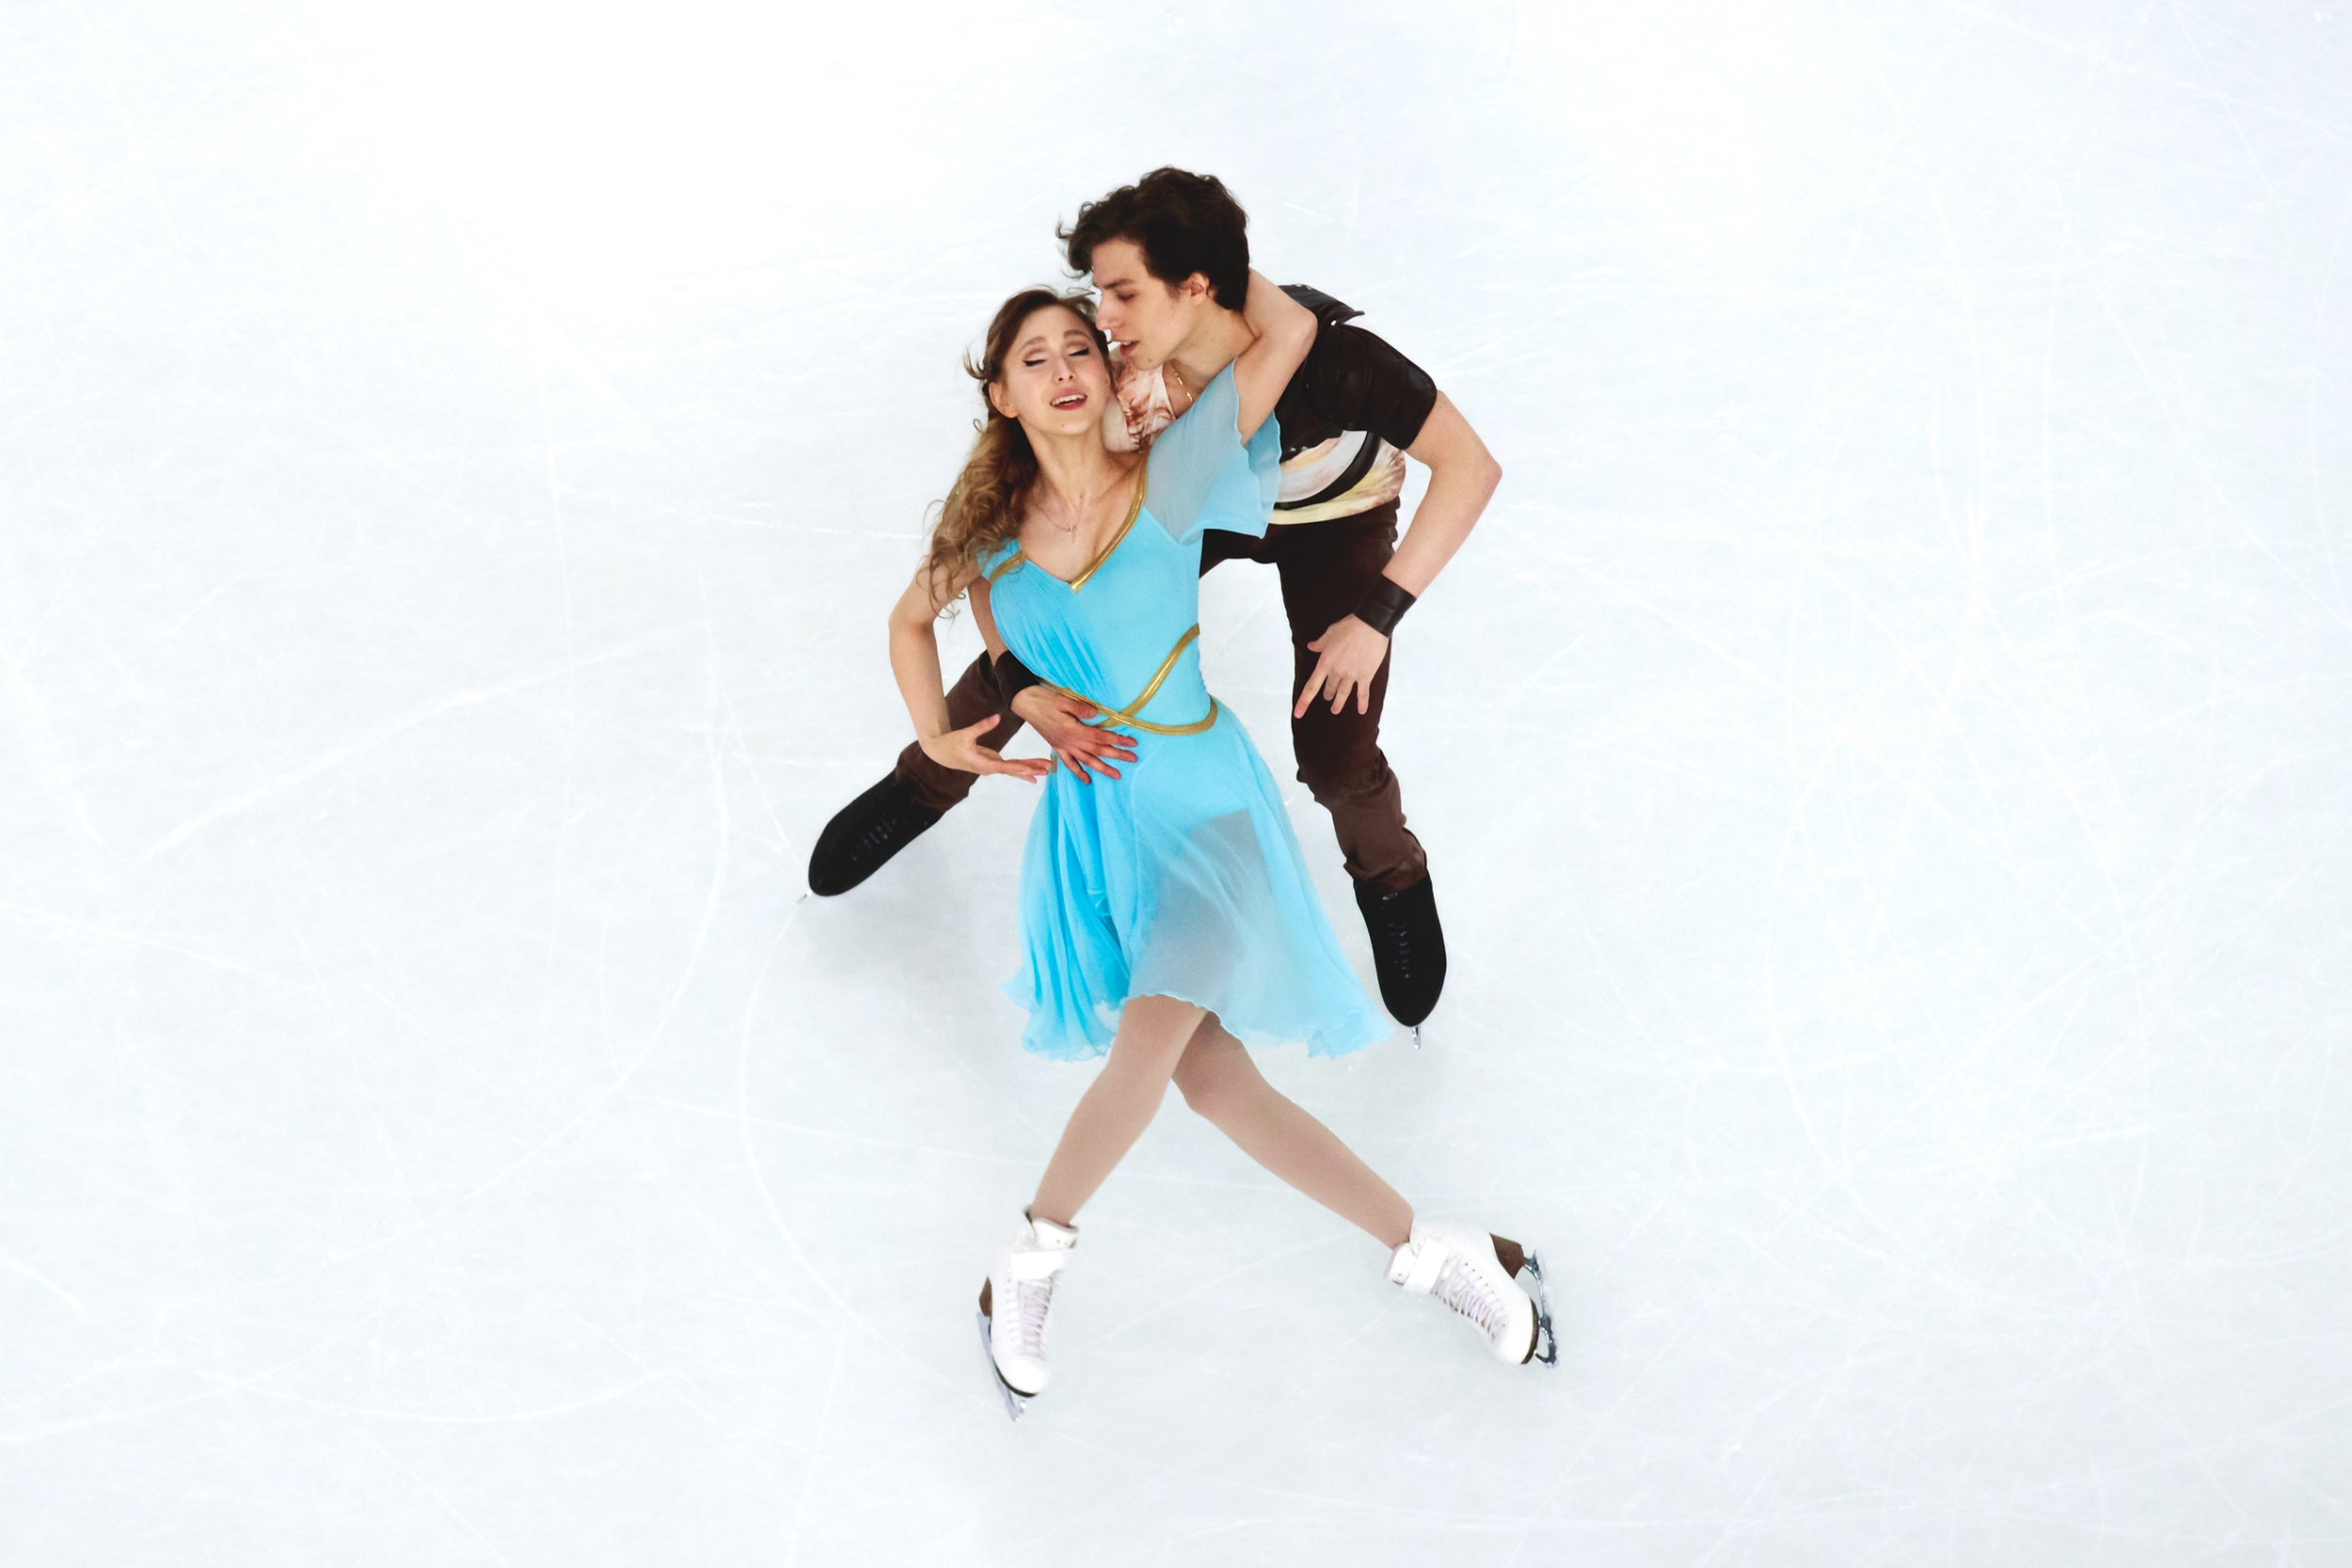 Angelique Abachkina and Louis Thauron from France skate during the Ice Dance Free Dance Skating program of the ISU World Junior Figure Skating Championships 2016 at The Fonix Arena on March 19, 2016 in Debrecen, Hungary.